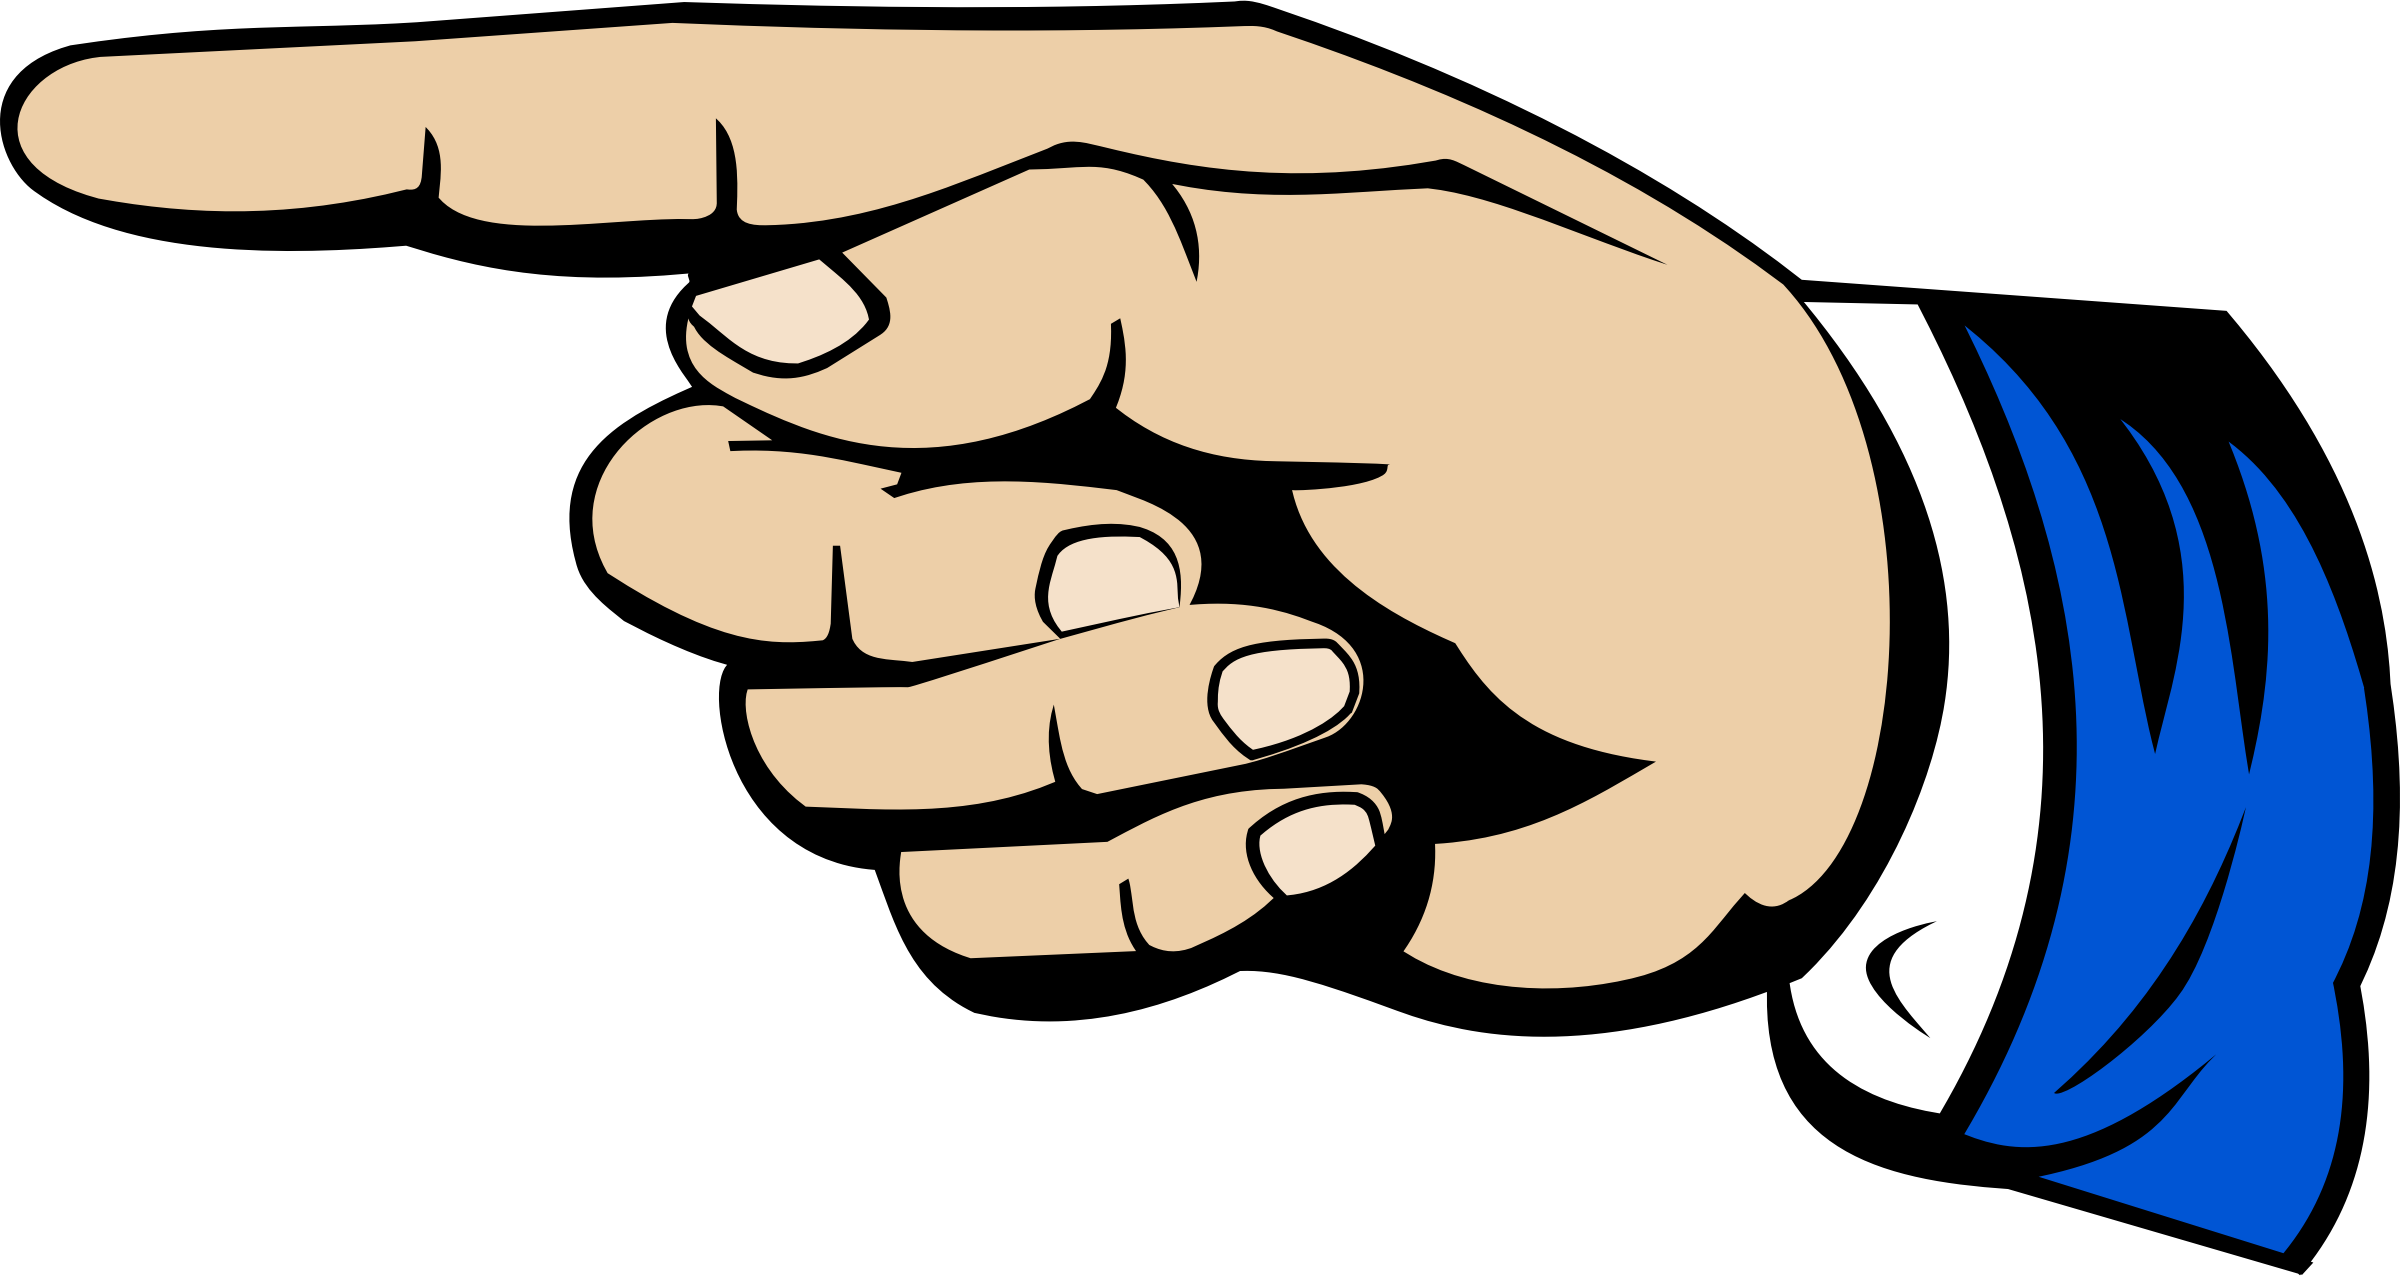 Pointing finger png. Thumb index digit clip